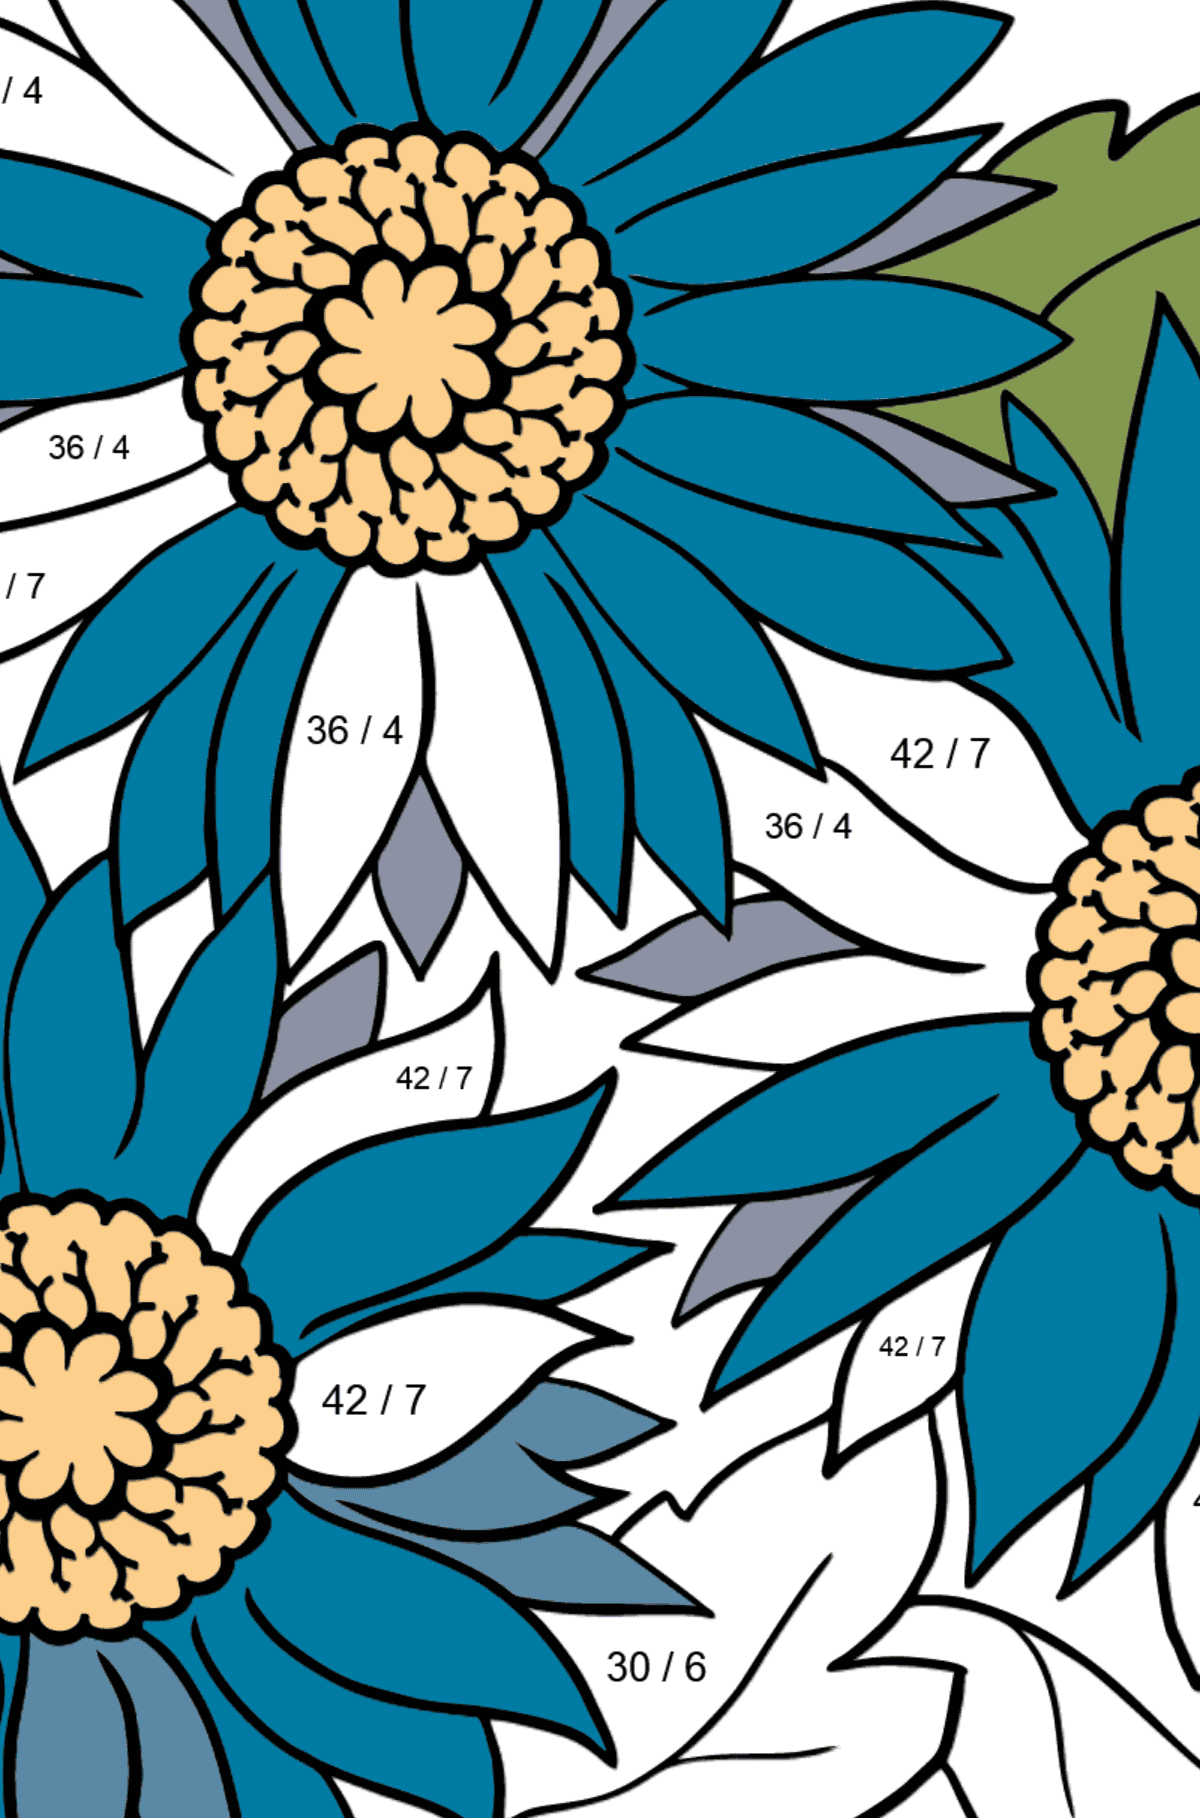 Flower Coloring Page - A Blue Gerbera - Math Coloring - Division for Kids